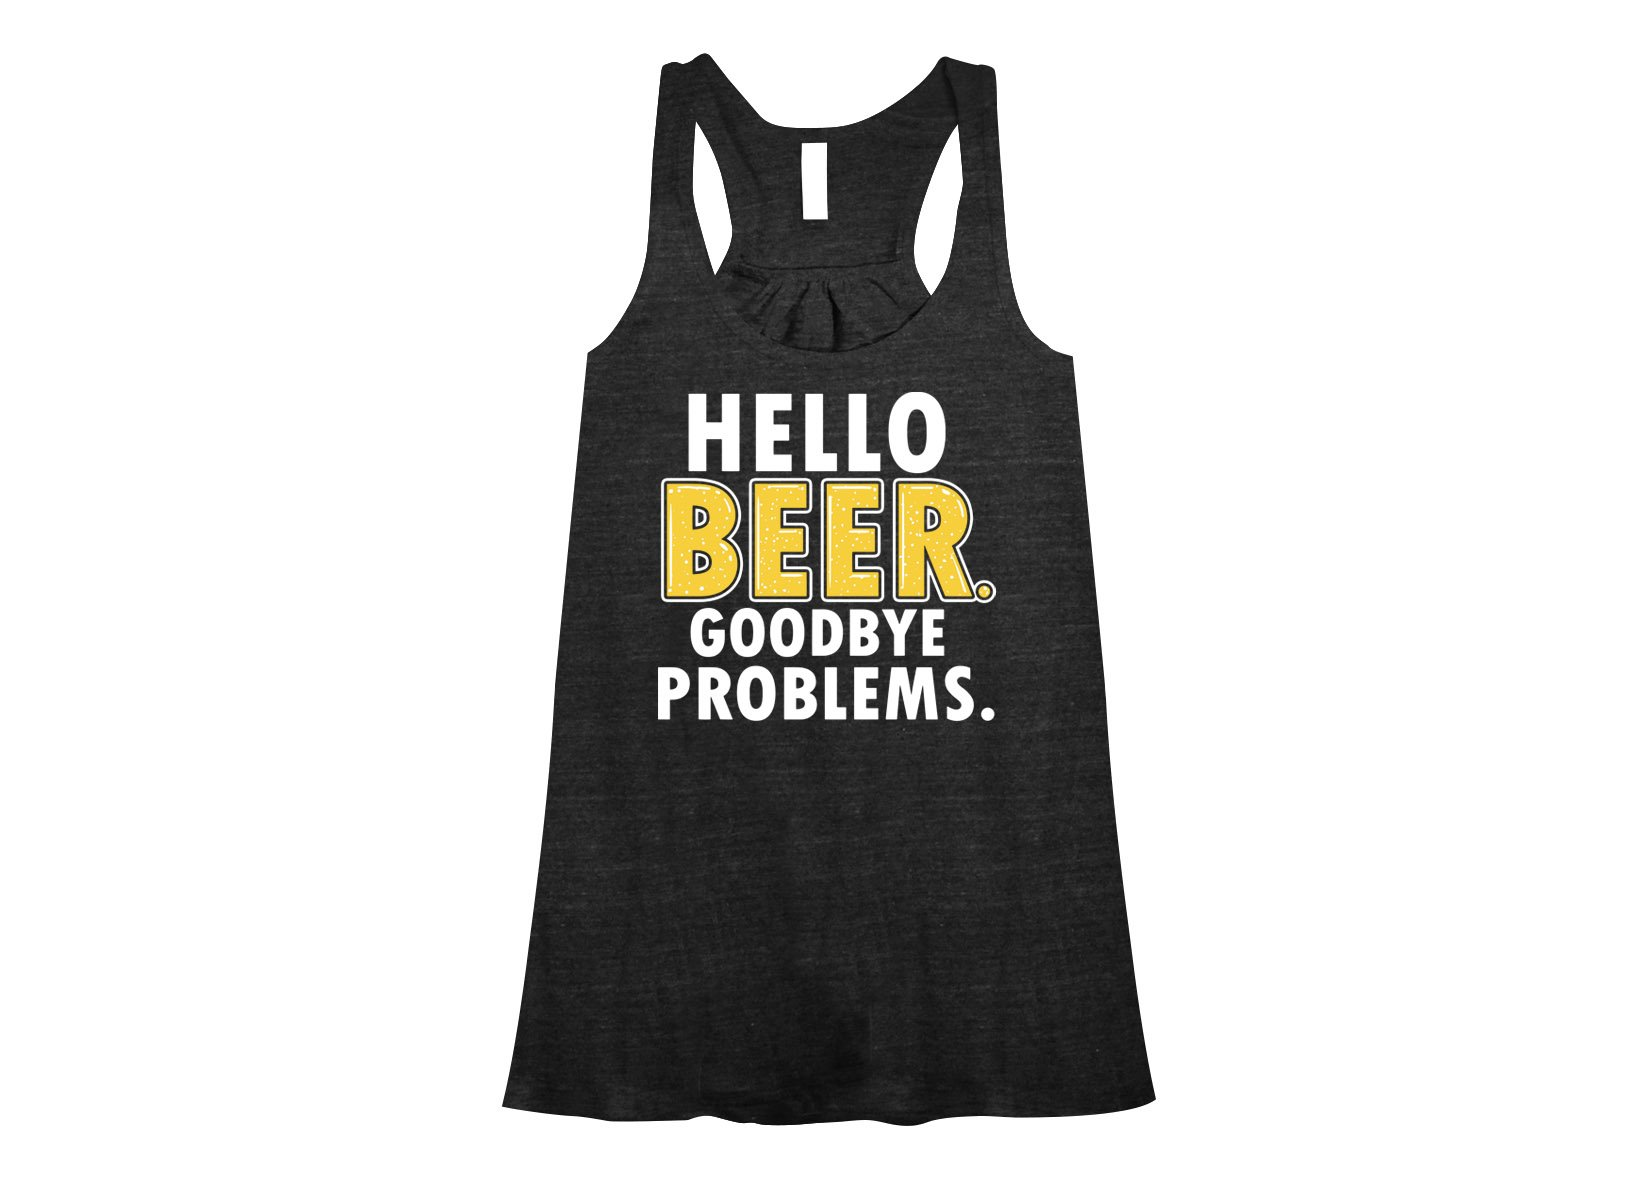 Hello Beer. Goodbye Problems. on Womens Tanks T-Shirt